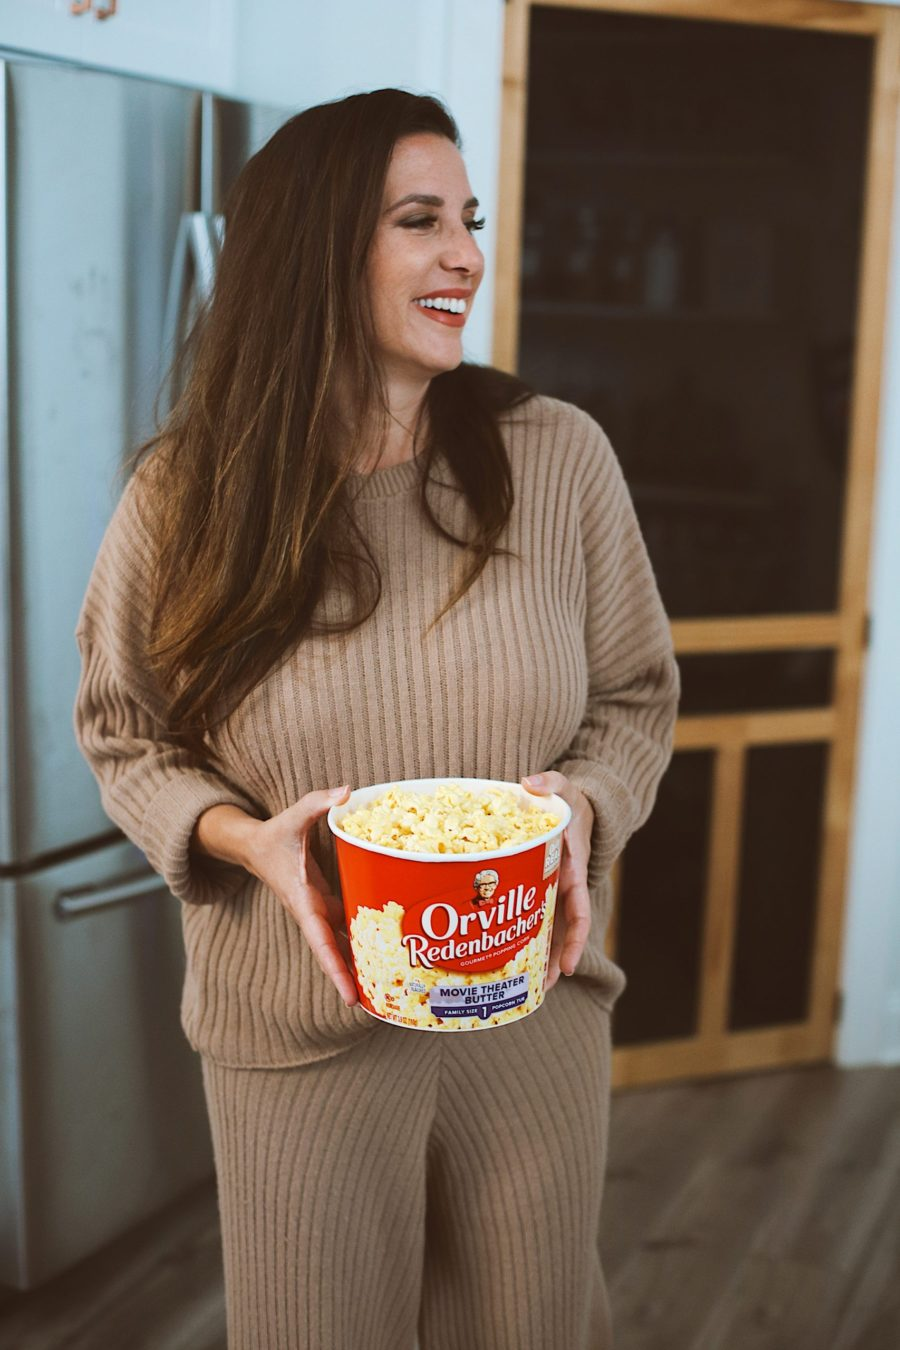 10 Popcorn Games for a Great Family Fun Night | Family Fun Night by popular Florida lifestyle blog, Fresh Mommy Blog: image of Tabitha Blue holding a container of ORville Redenbacher's movie theater popcorn.